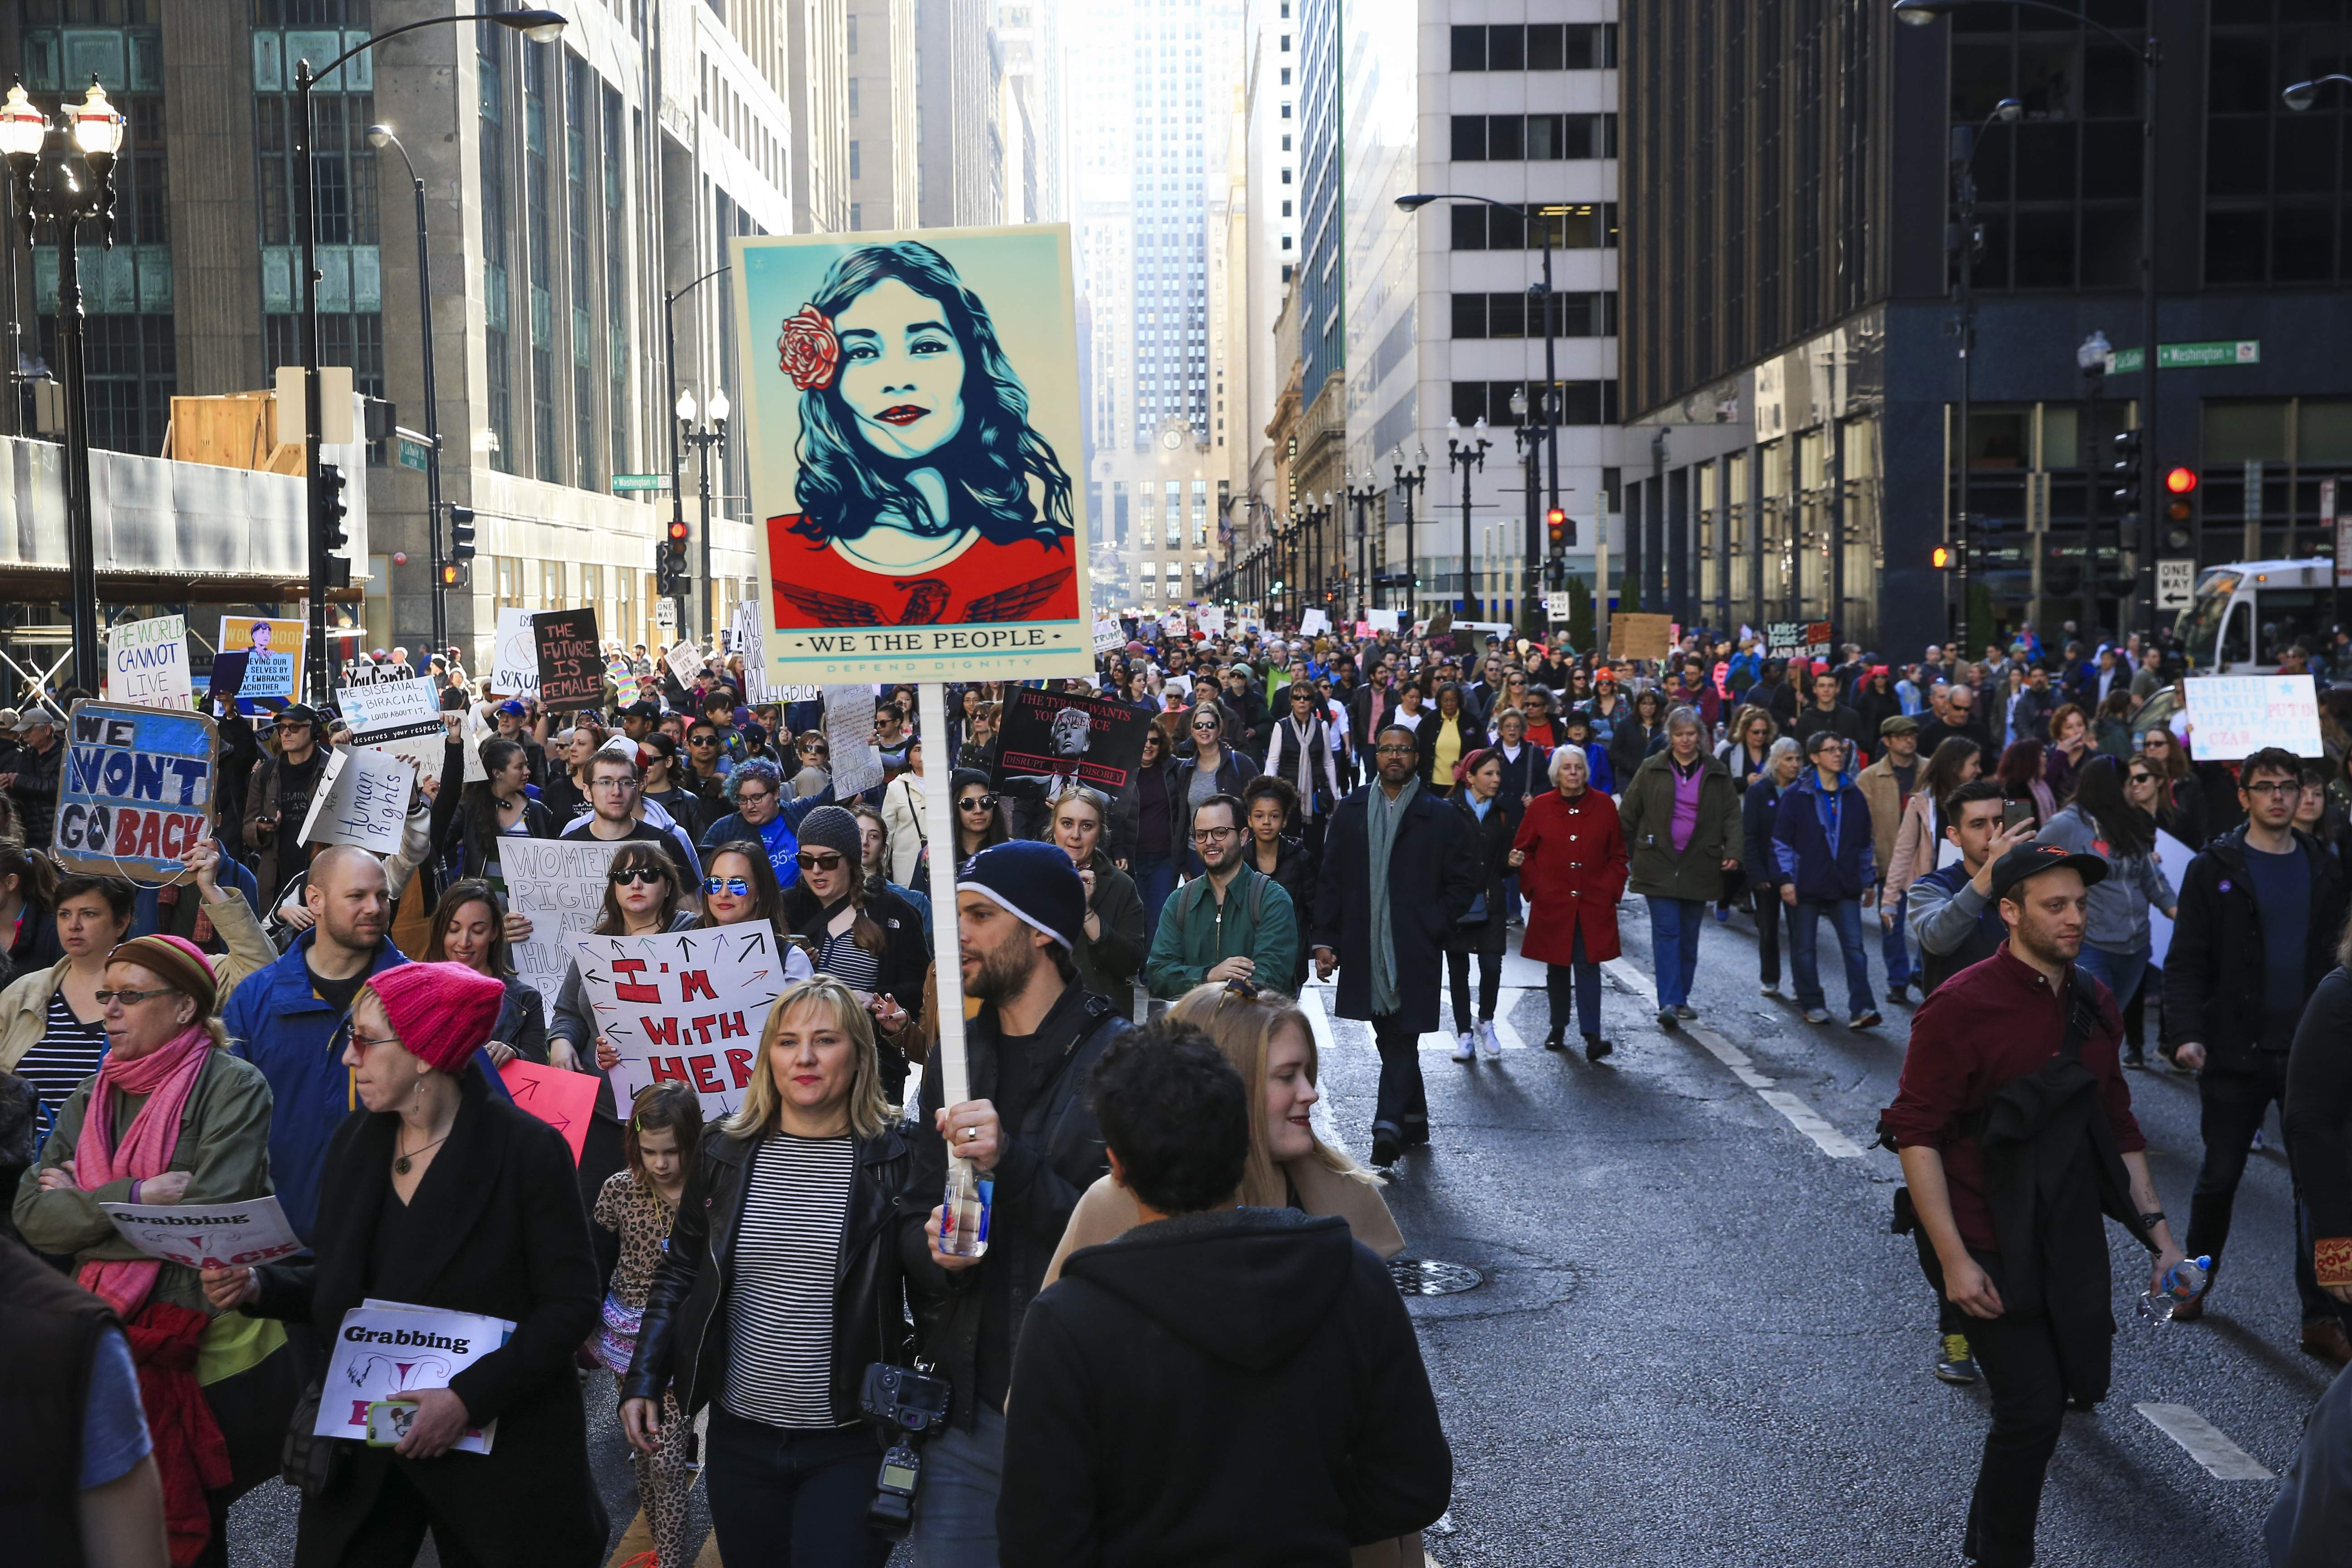 Protesters walk along North LaSalle Street during the Women's March on Chicago the day after President Donald Trump's inauguration Saturday, Jan. 21, 2017 in Chicago. THE ASSOCIATED PRESS